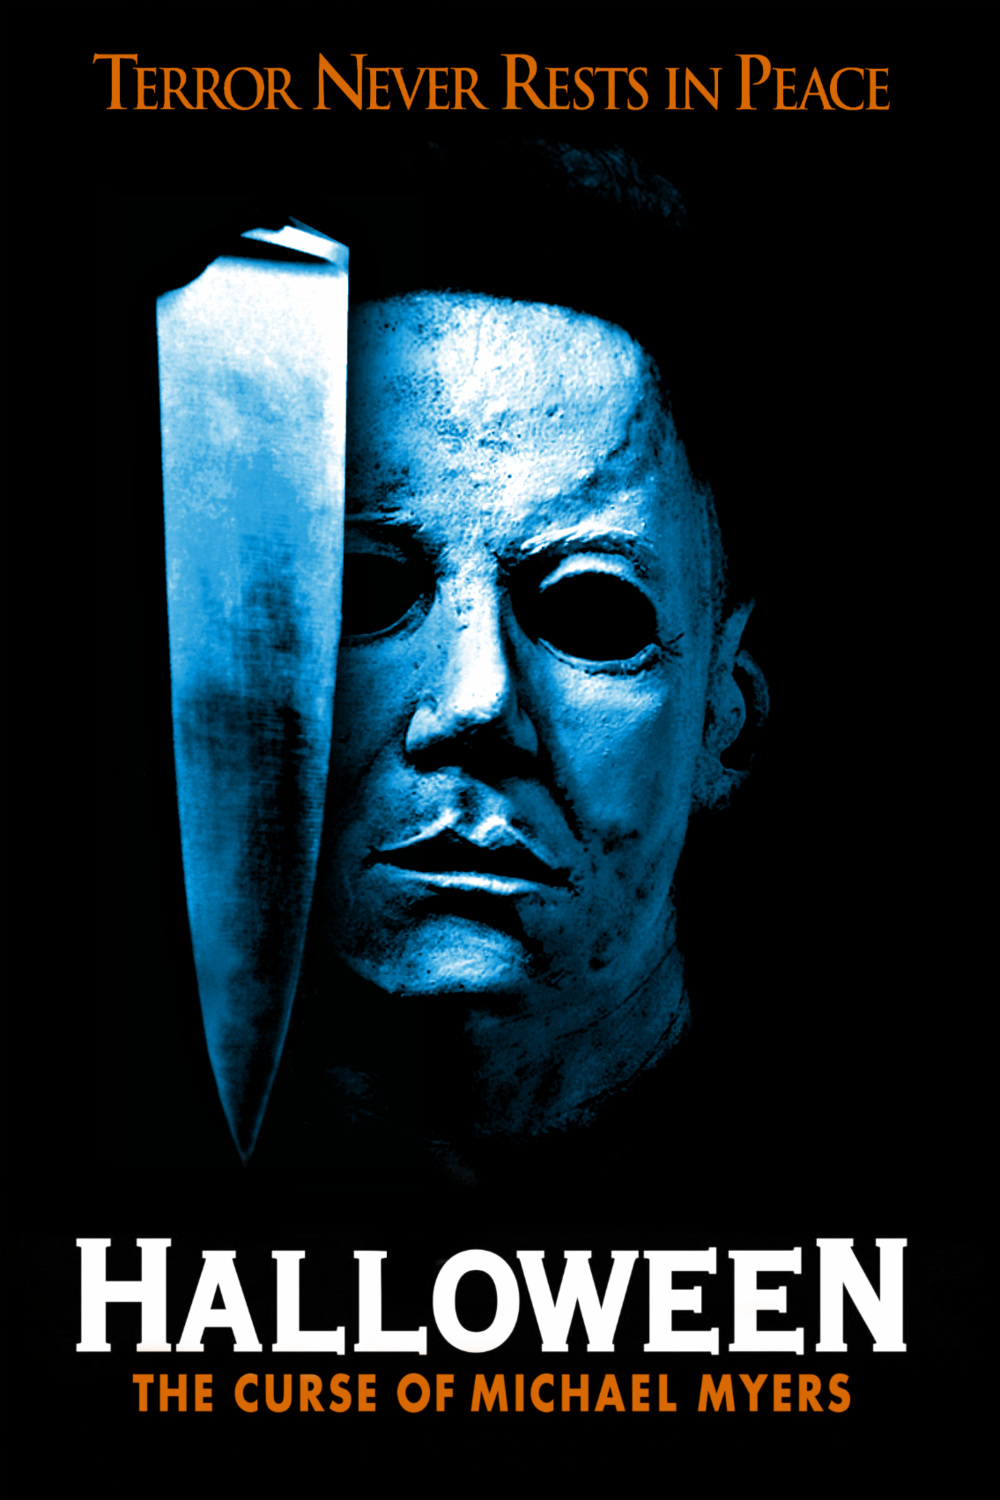 Halloween 2020 New Poster Michael Myers Pin by Pete Efthimi on Annie in 2020   Michael myers, Halloween